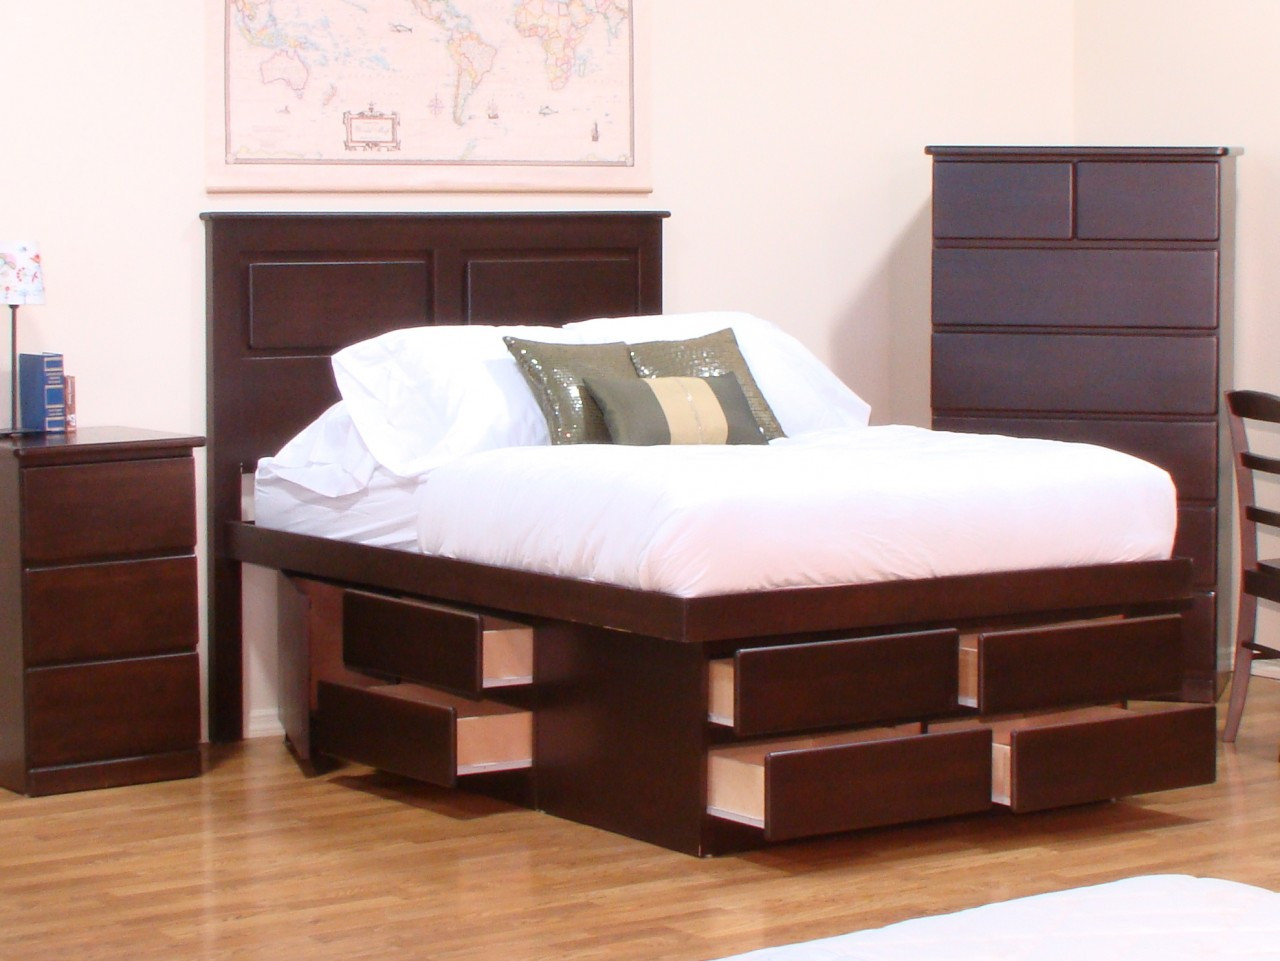 Image Result For Bunk Bed Mattress Twin Xl